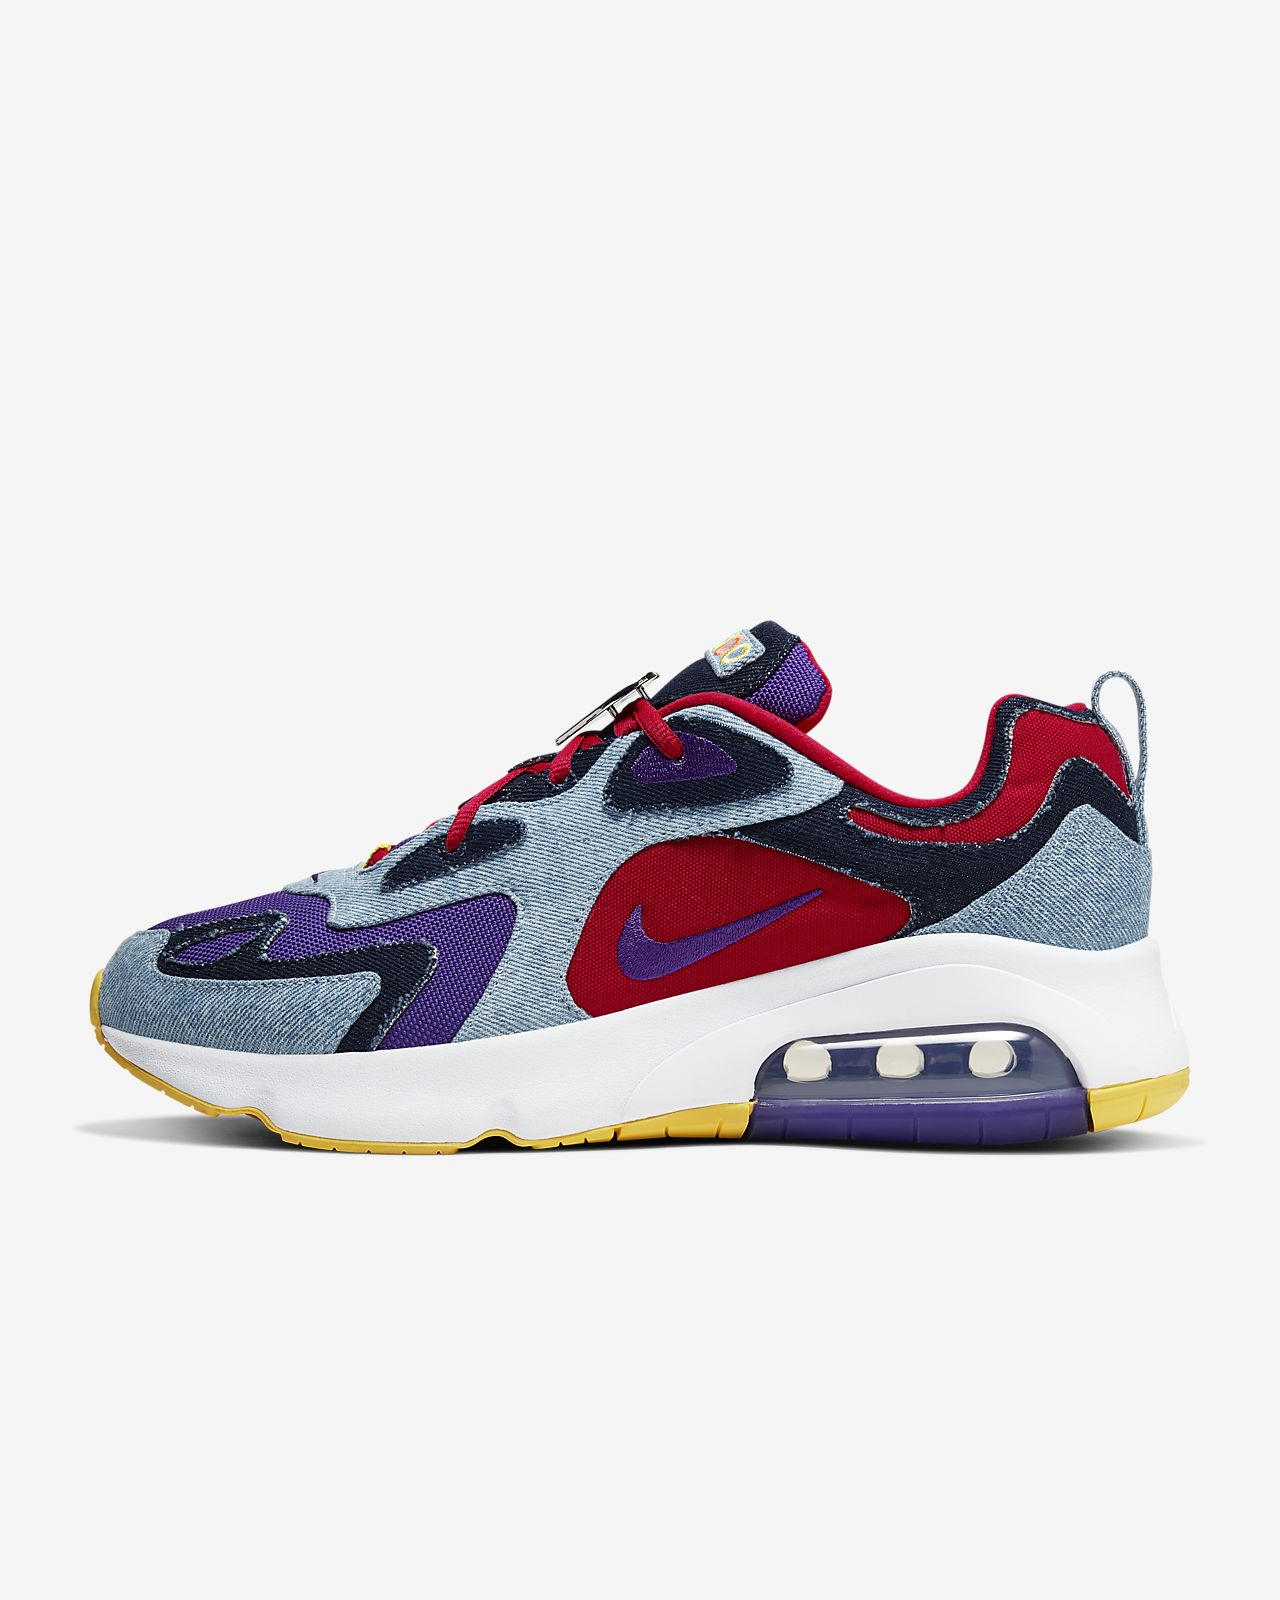 highly coveted range of new design boy Nike Air Max 200 SP Men's Shoe